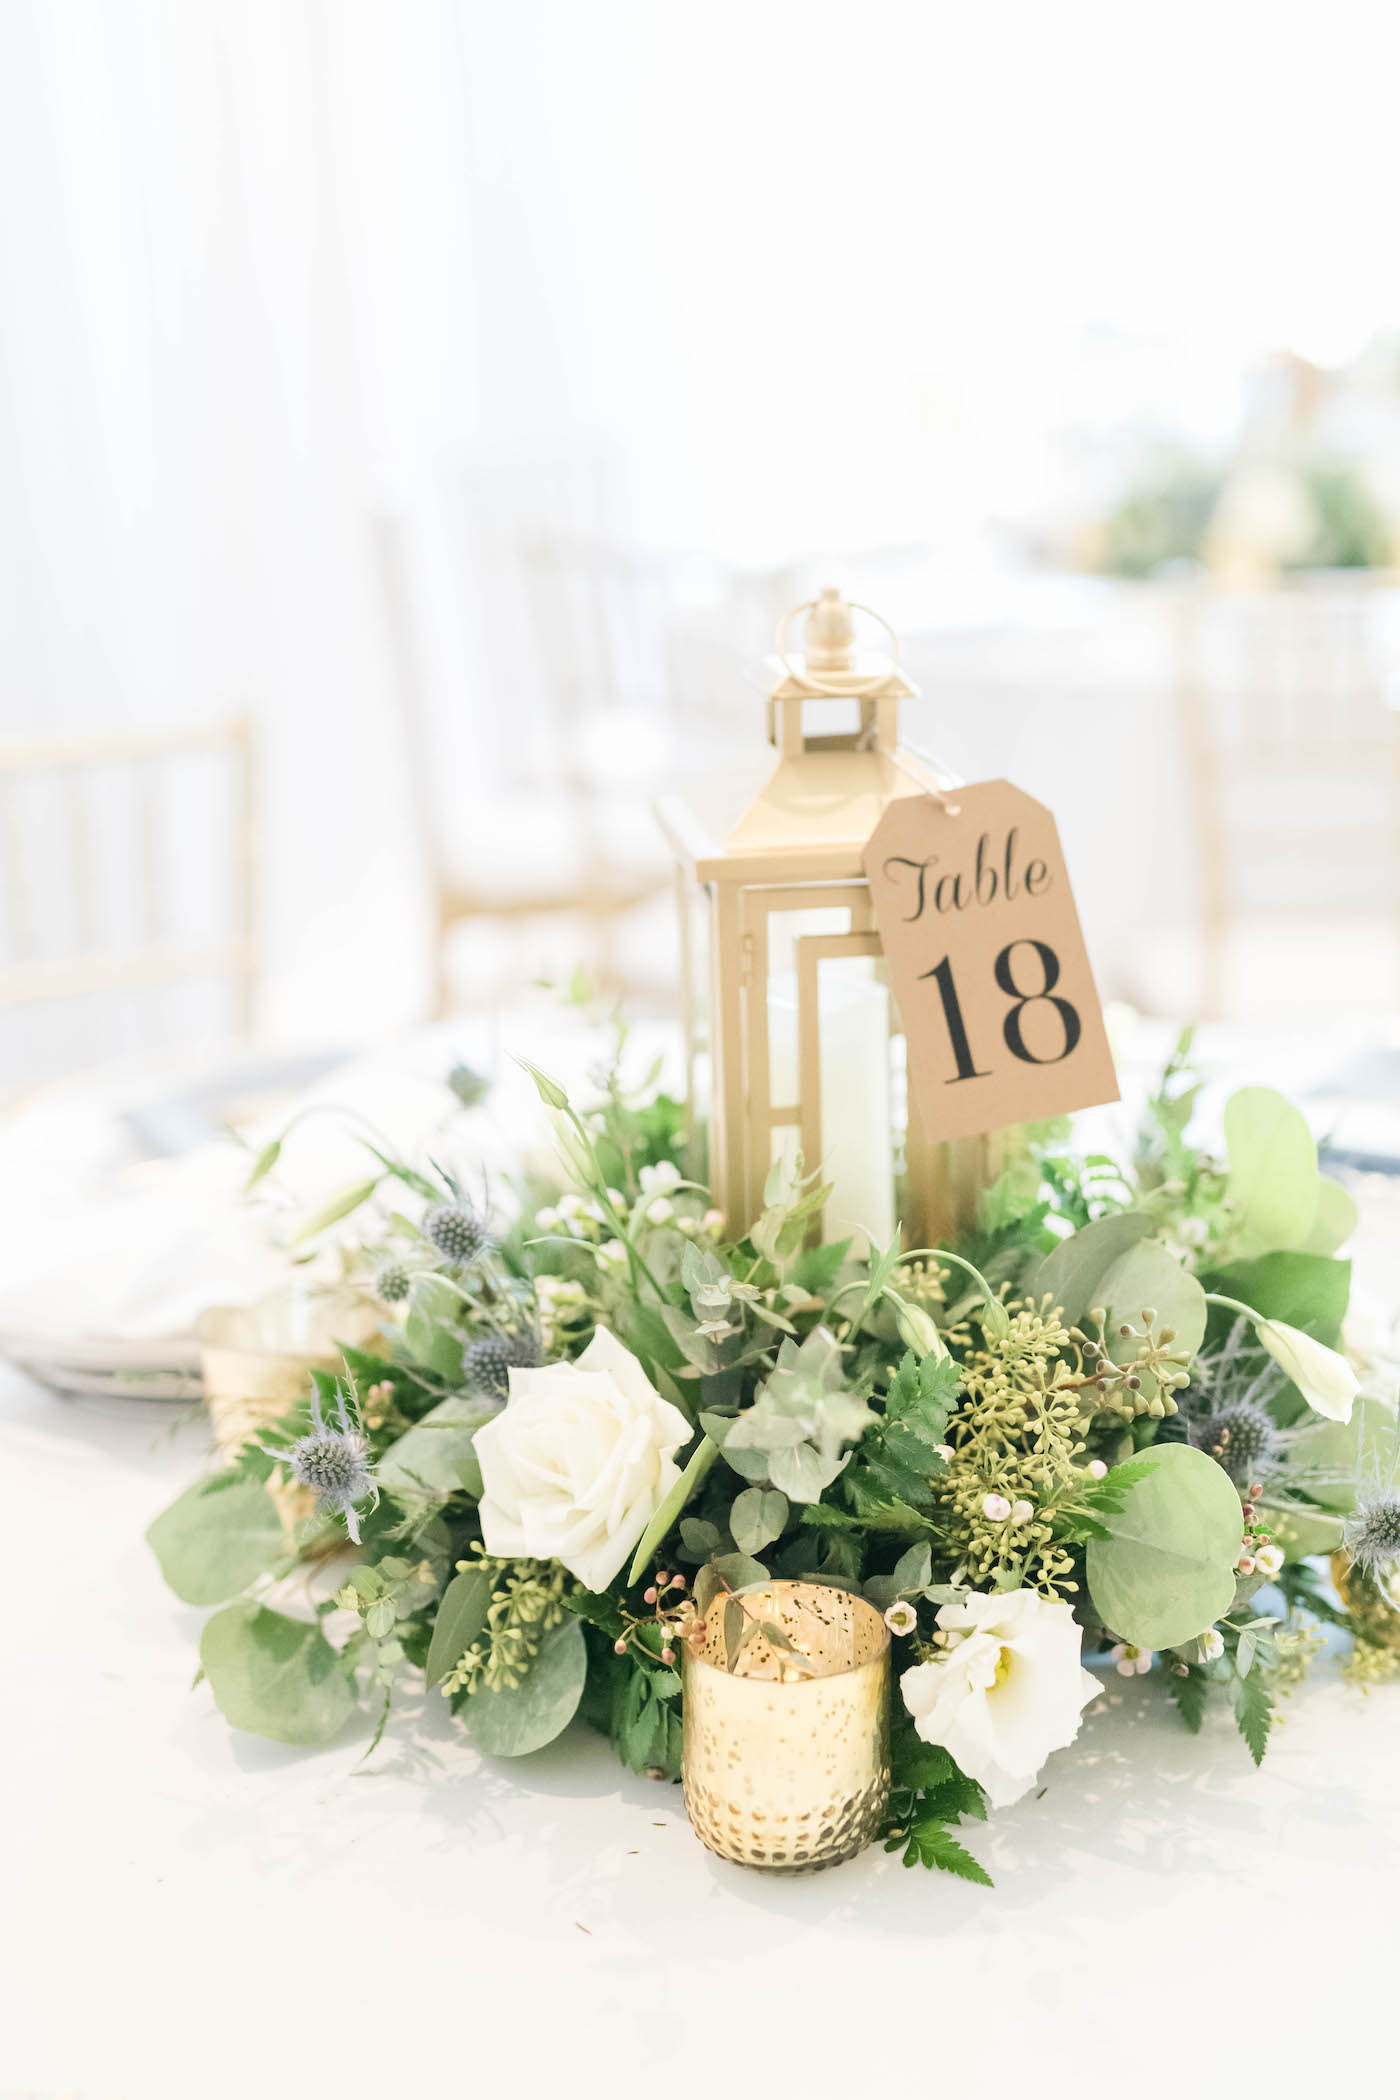 Wedding Centerpiece with Lantern and Greenery with Gold Votive Candles and Kraft Paper Table Number Tag